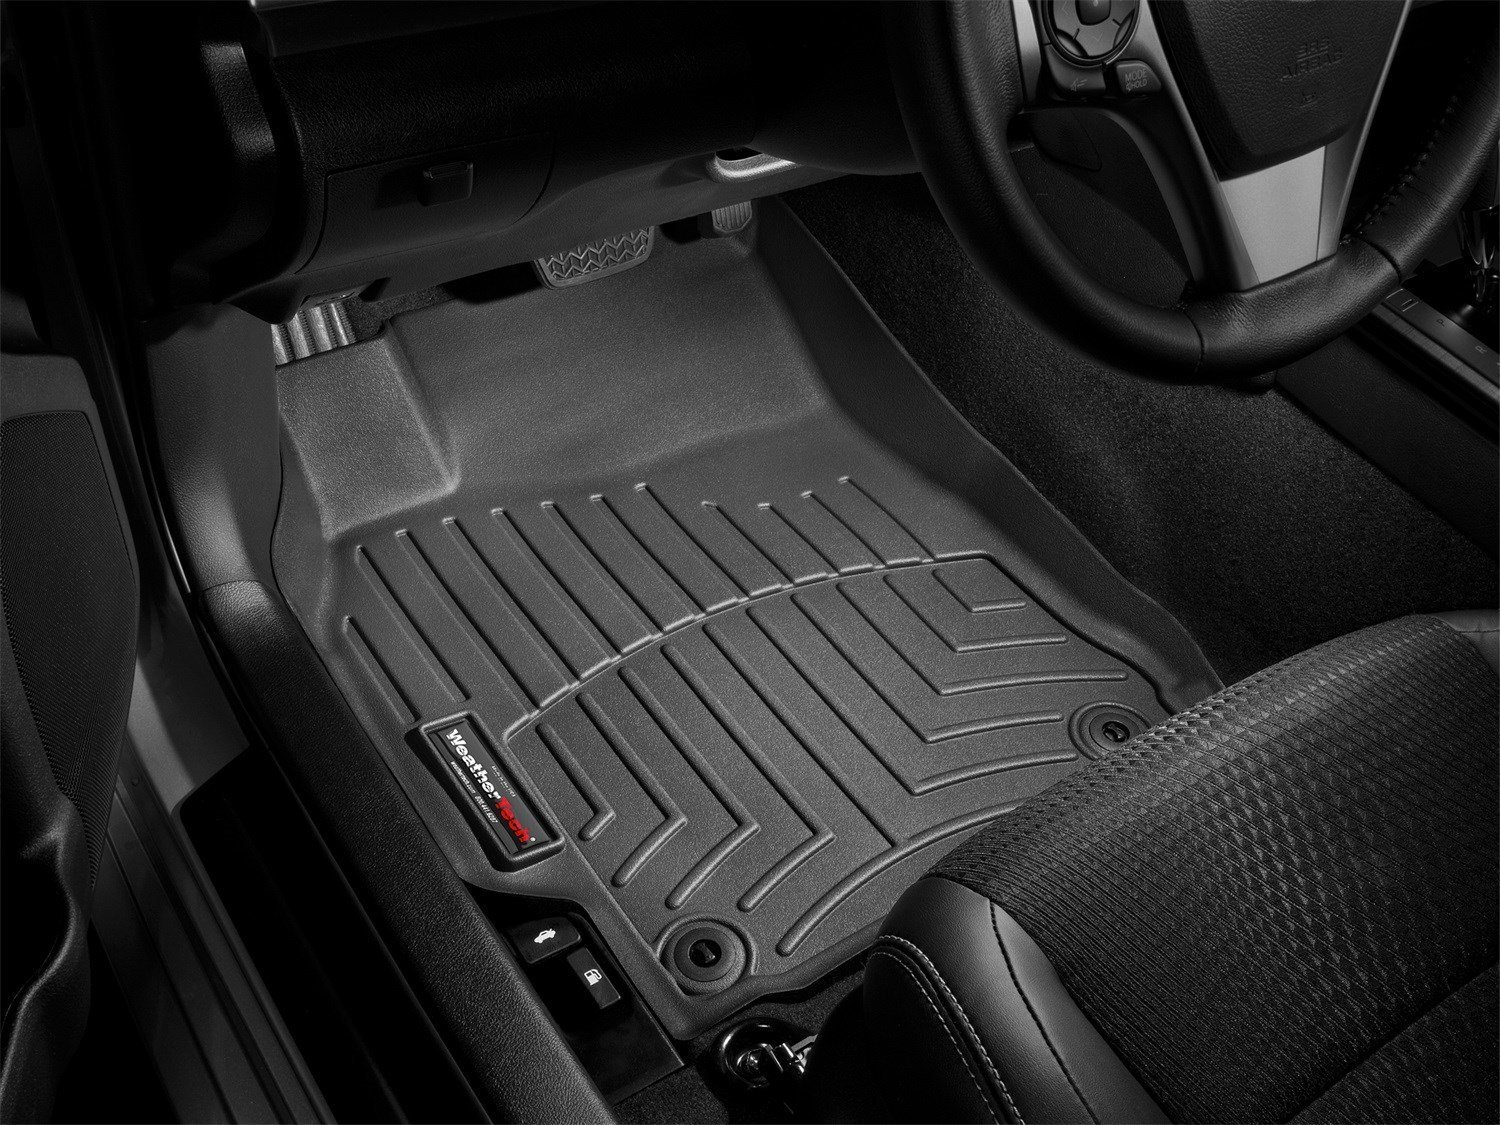 How to unlock weathertech floor mats - Amazon Com Weathertech Custom Fit Front Floorliner For Honda Pilot Black Automotive